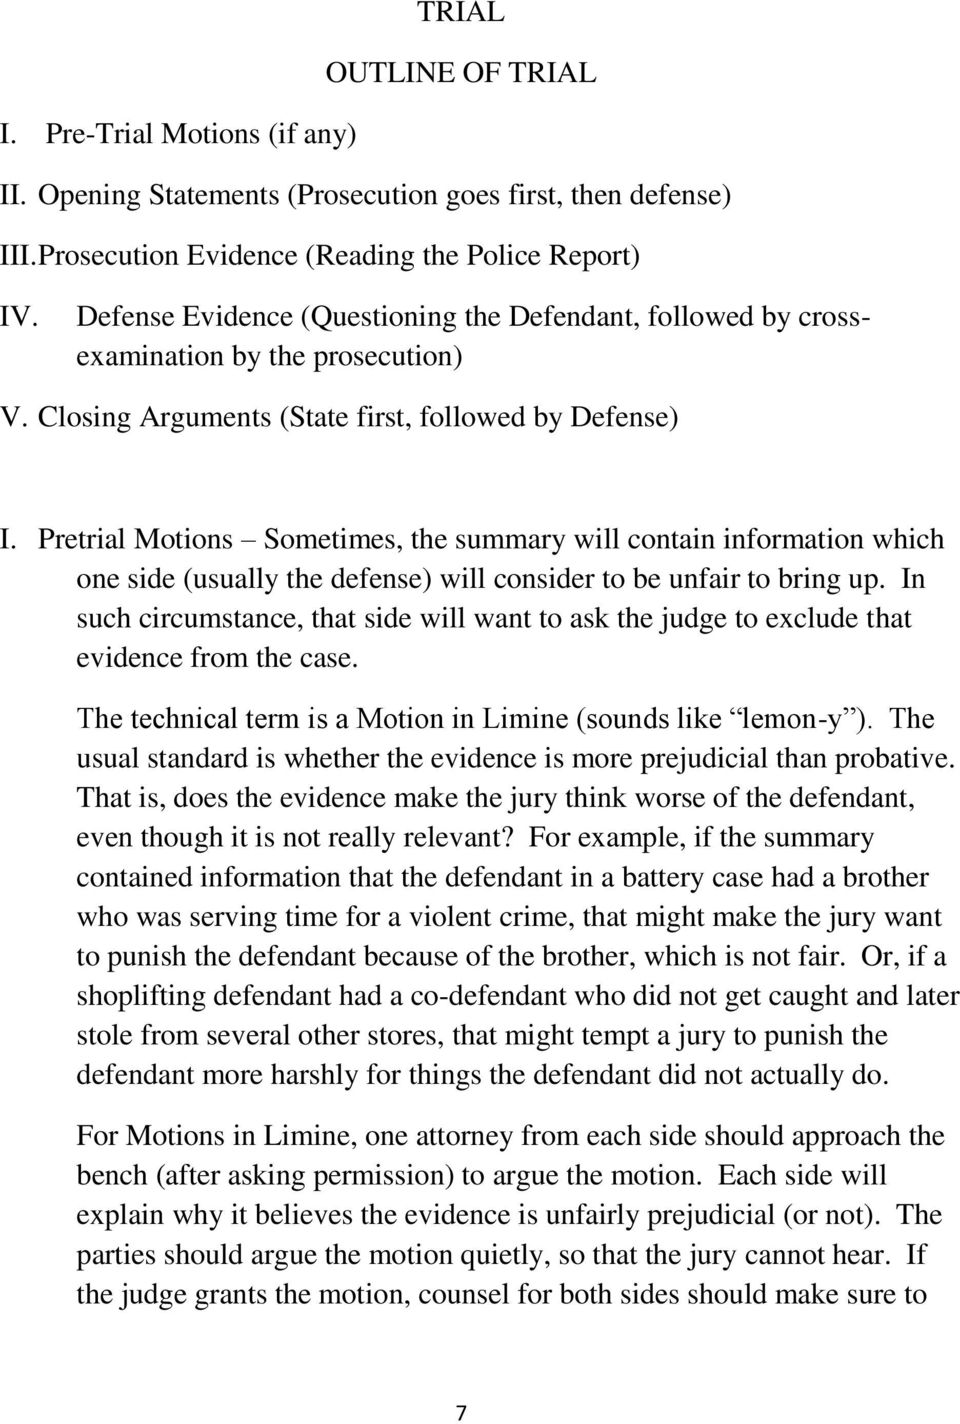 Pretrial Motions Sometimes, the summary will contain information which one side (usually the defense) will consider to be unfair to bring up.